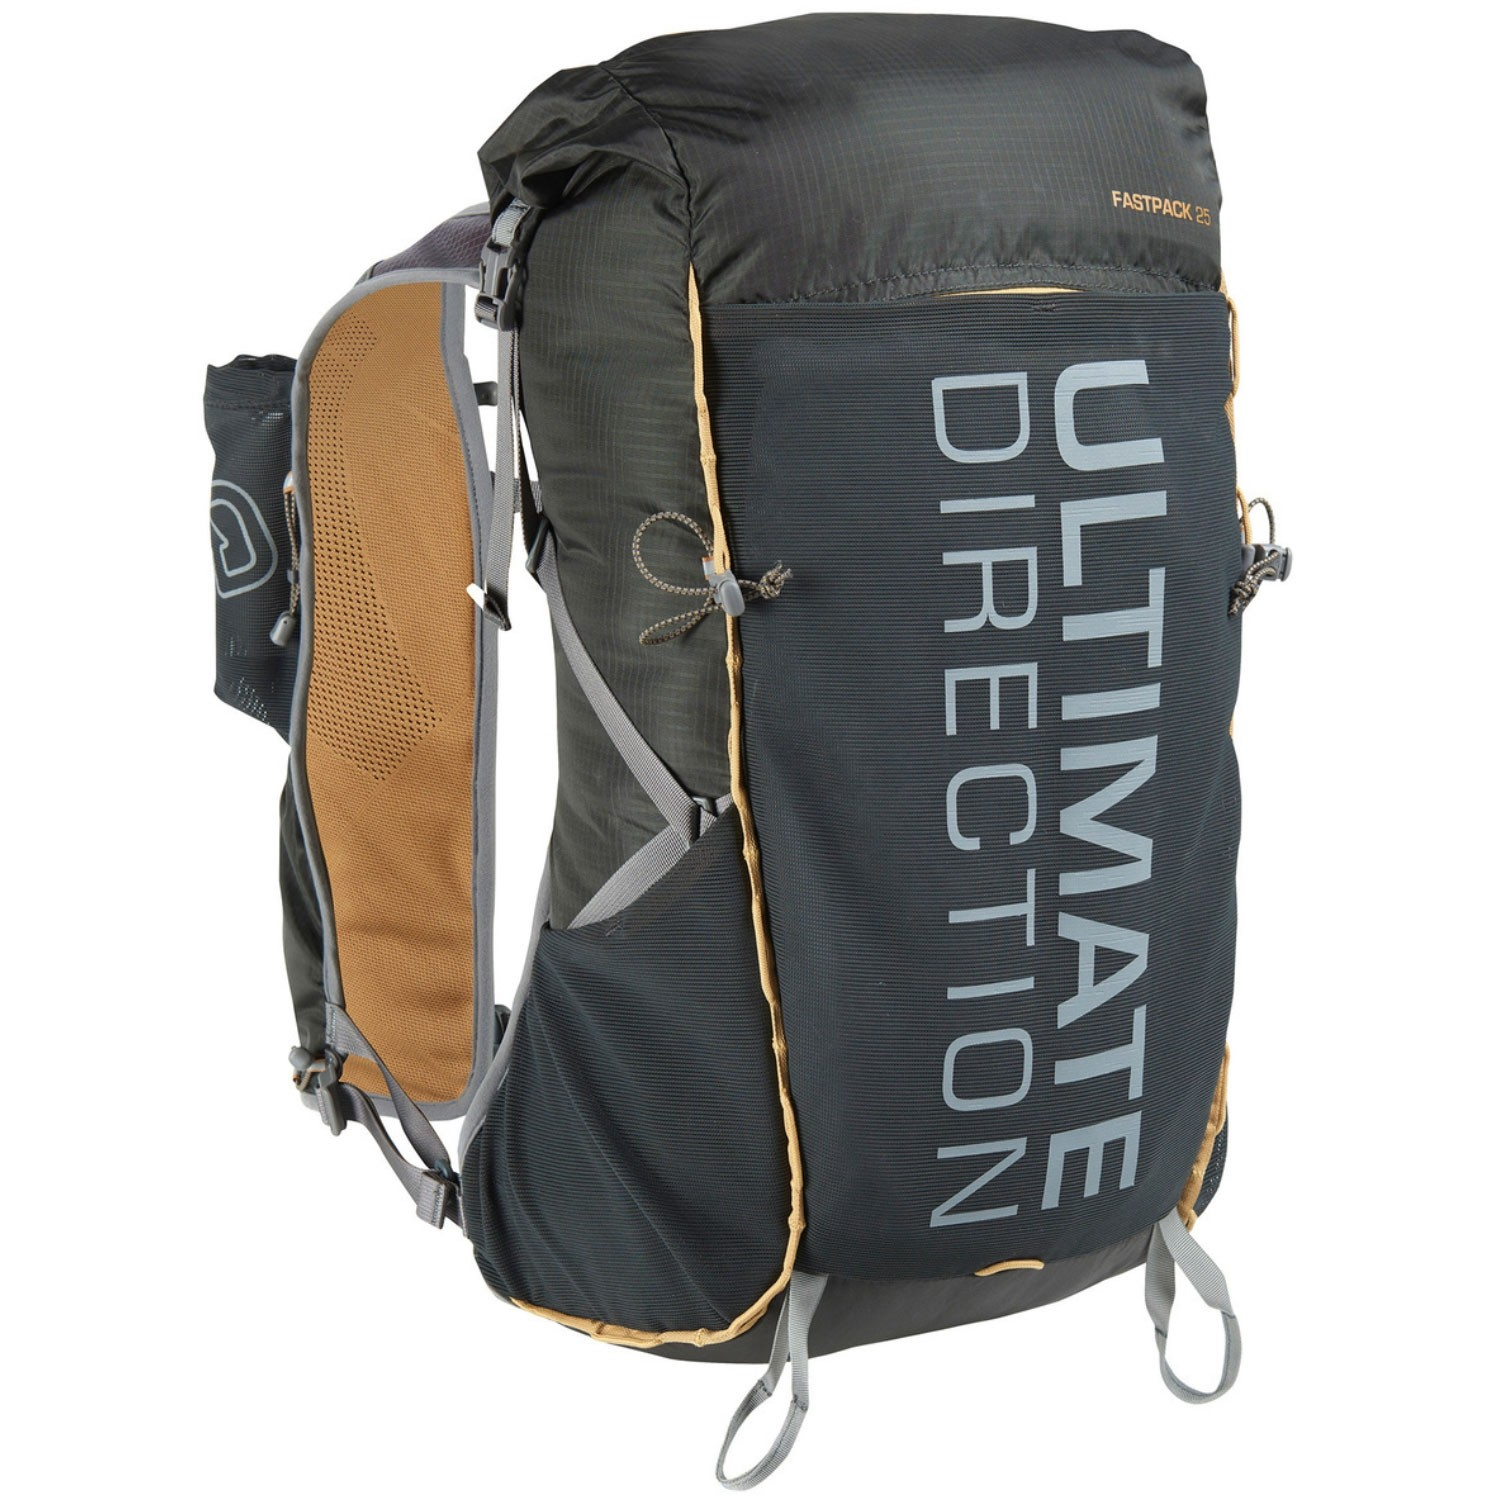 Ultimate Direction Fastpack 25 Running Pack - Graphite